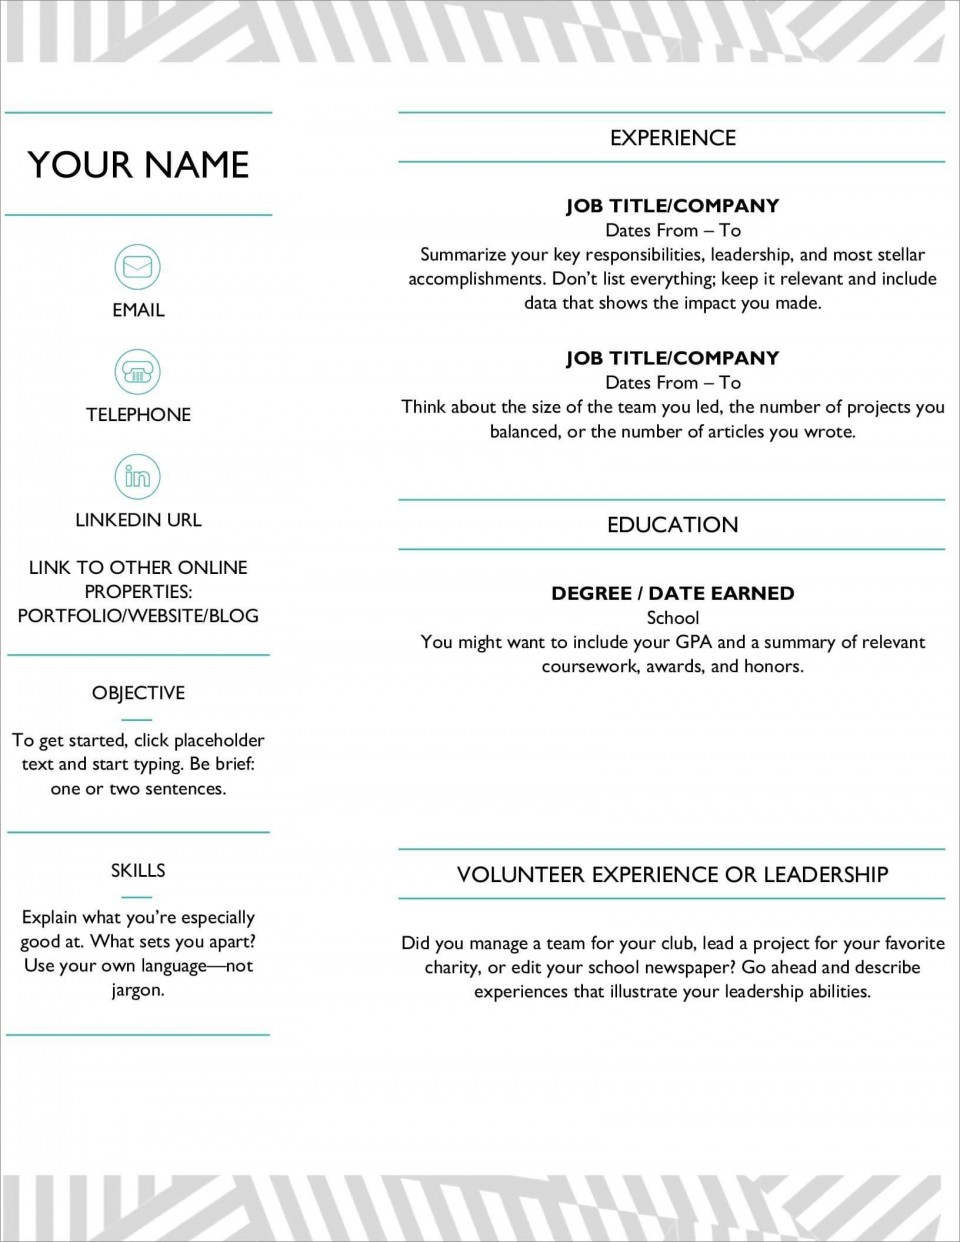 007 Top Download Resume Template Microsoft Word Concept  Free 2007 2010 Creative For Fresher960